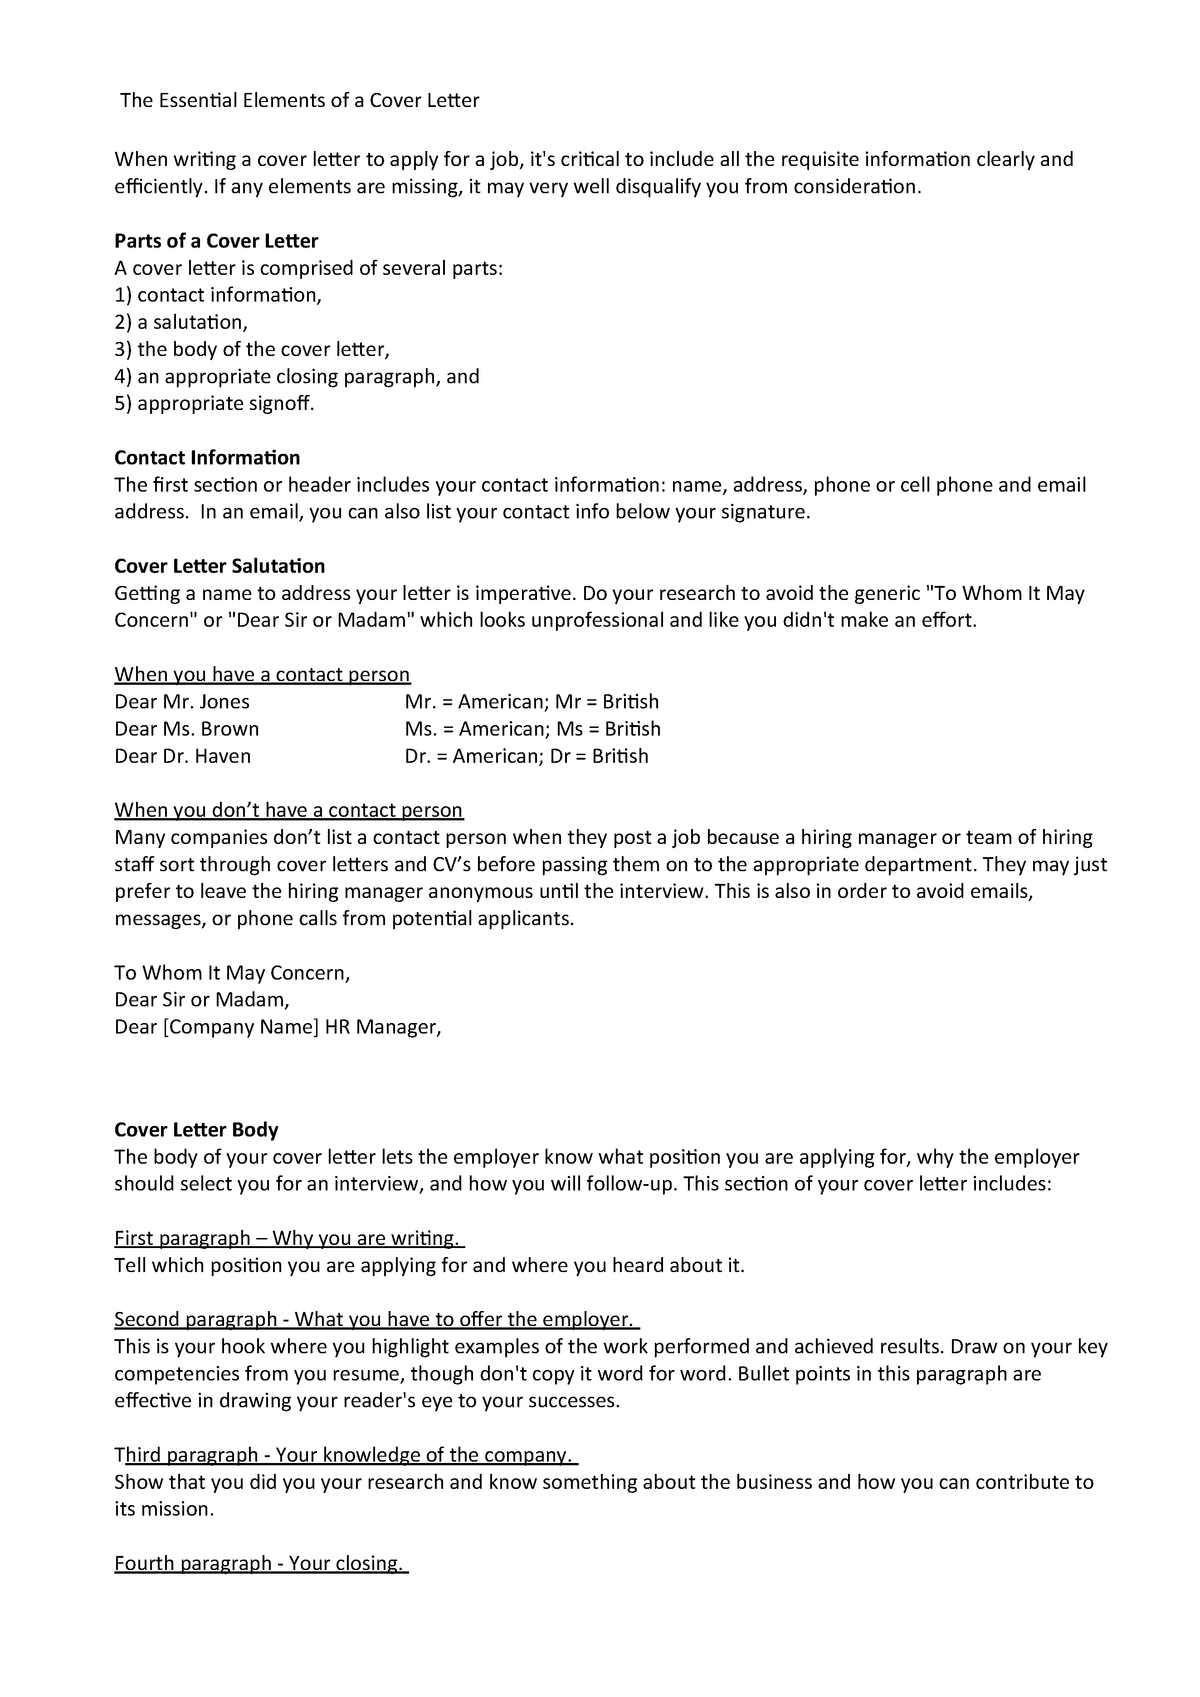 Bullet Points In Cover Letter from d20ohkaloyme4g.cloudfront.net